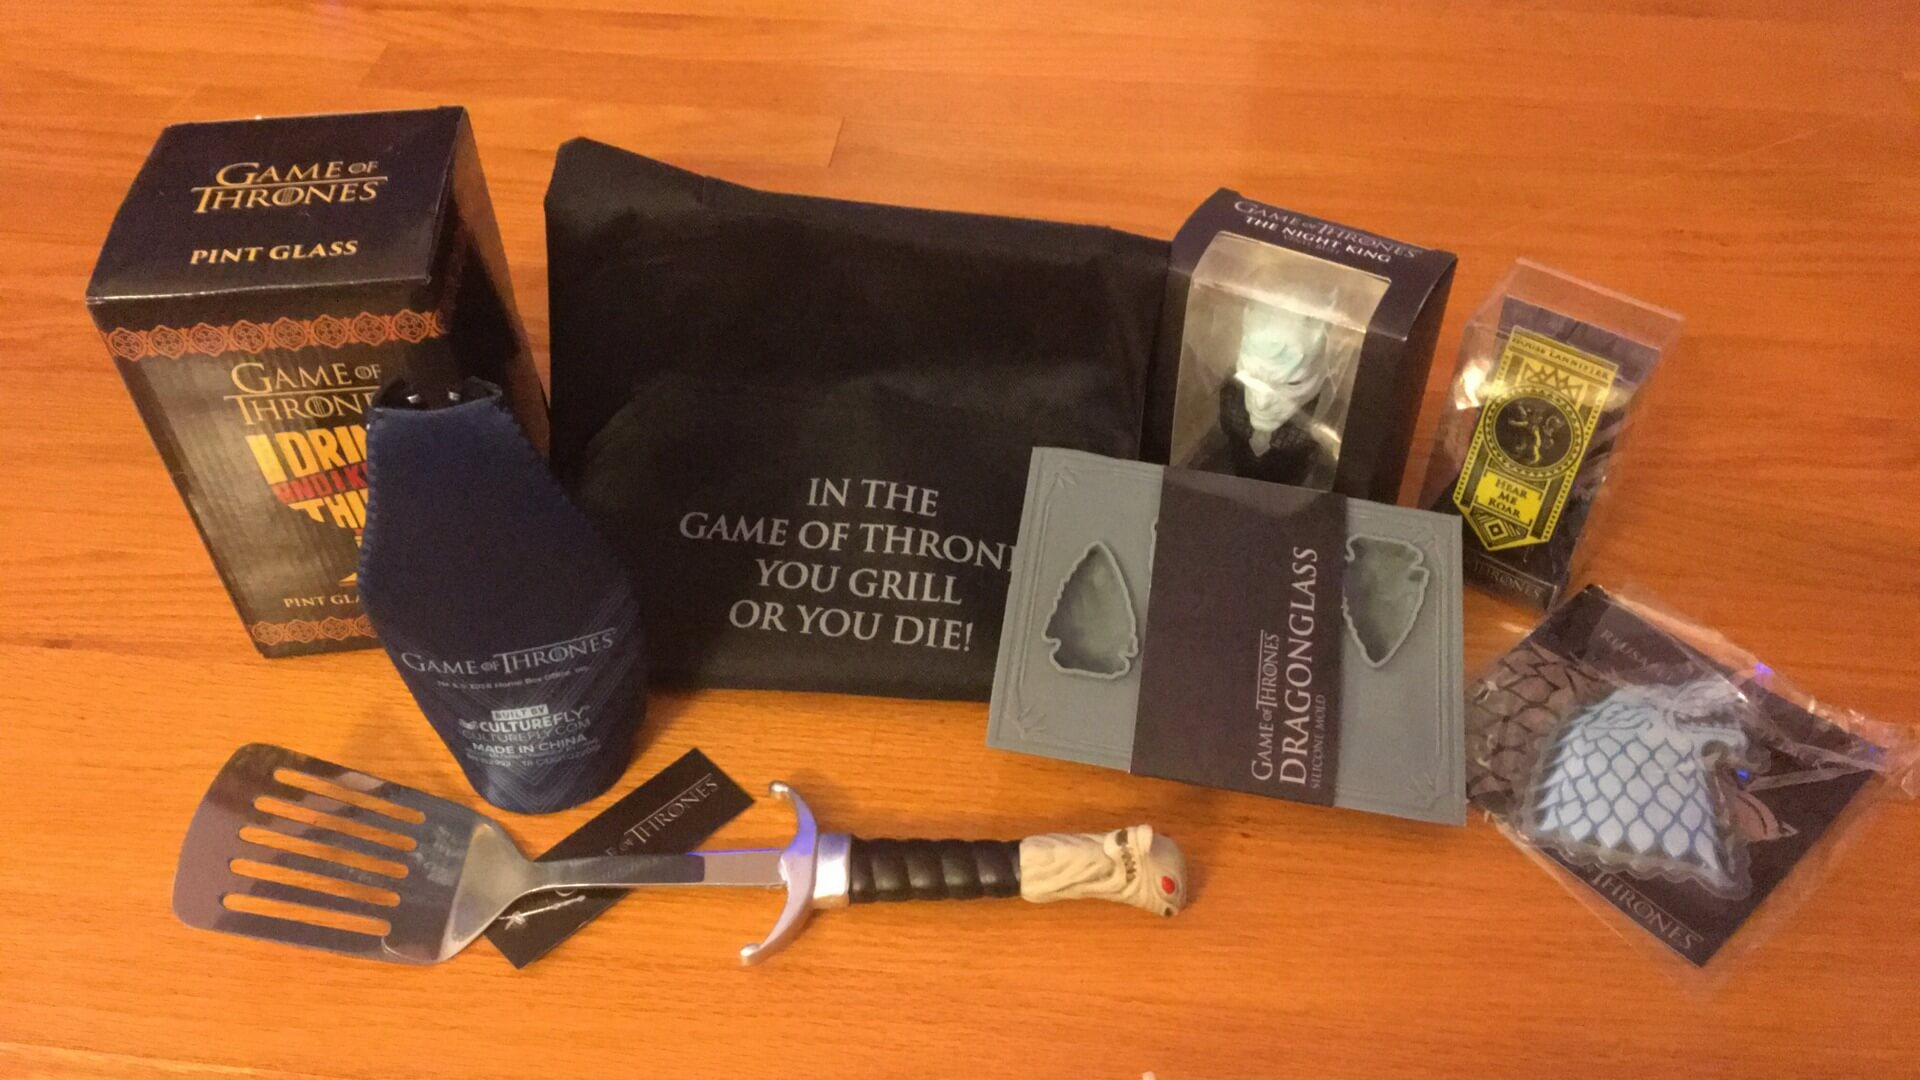 Culture Fly's Game of Thrones Noble Feast of Westeros - Review